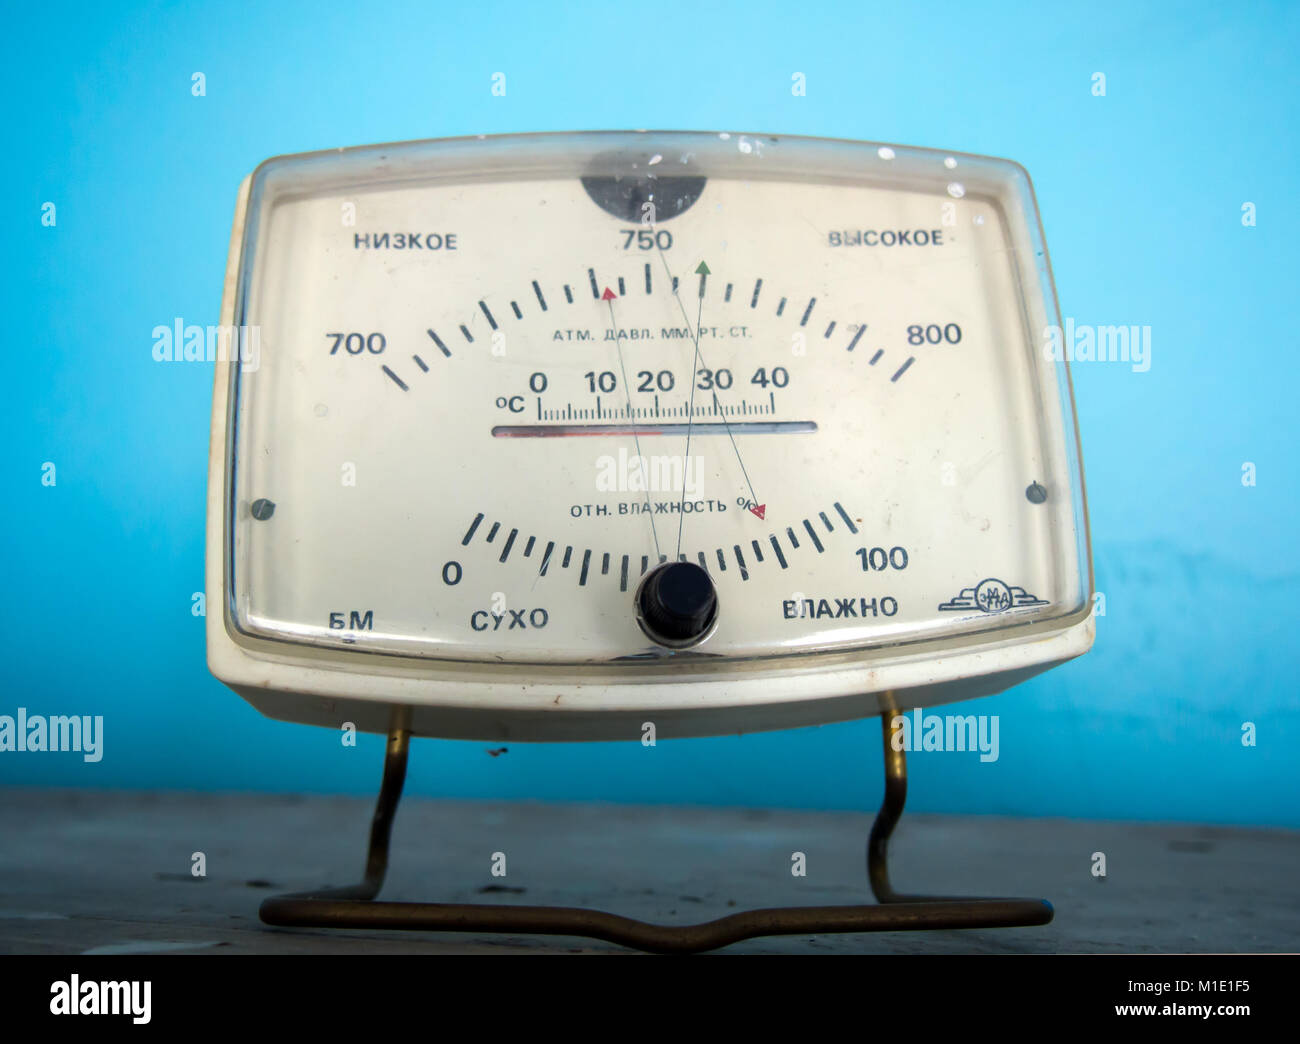 Former apparatus for measuring temperature, pressure and humidity - Stock Image